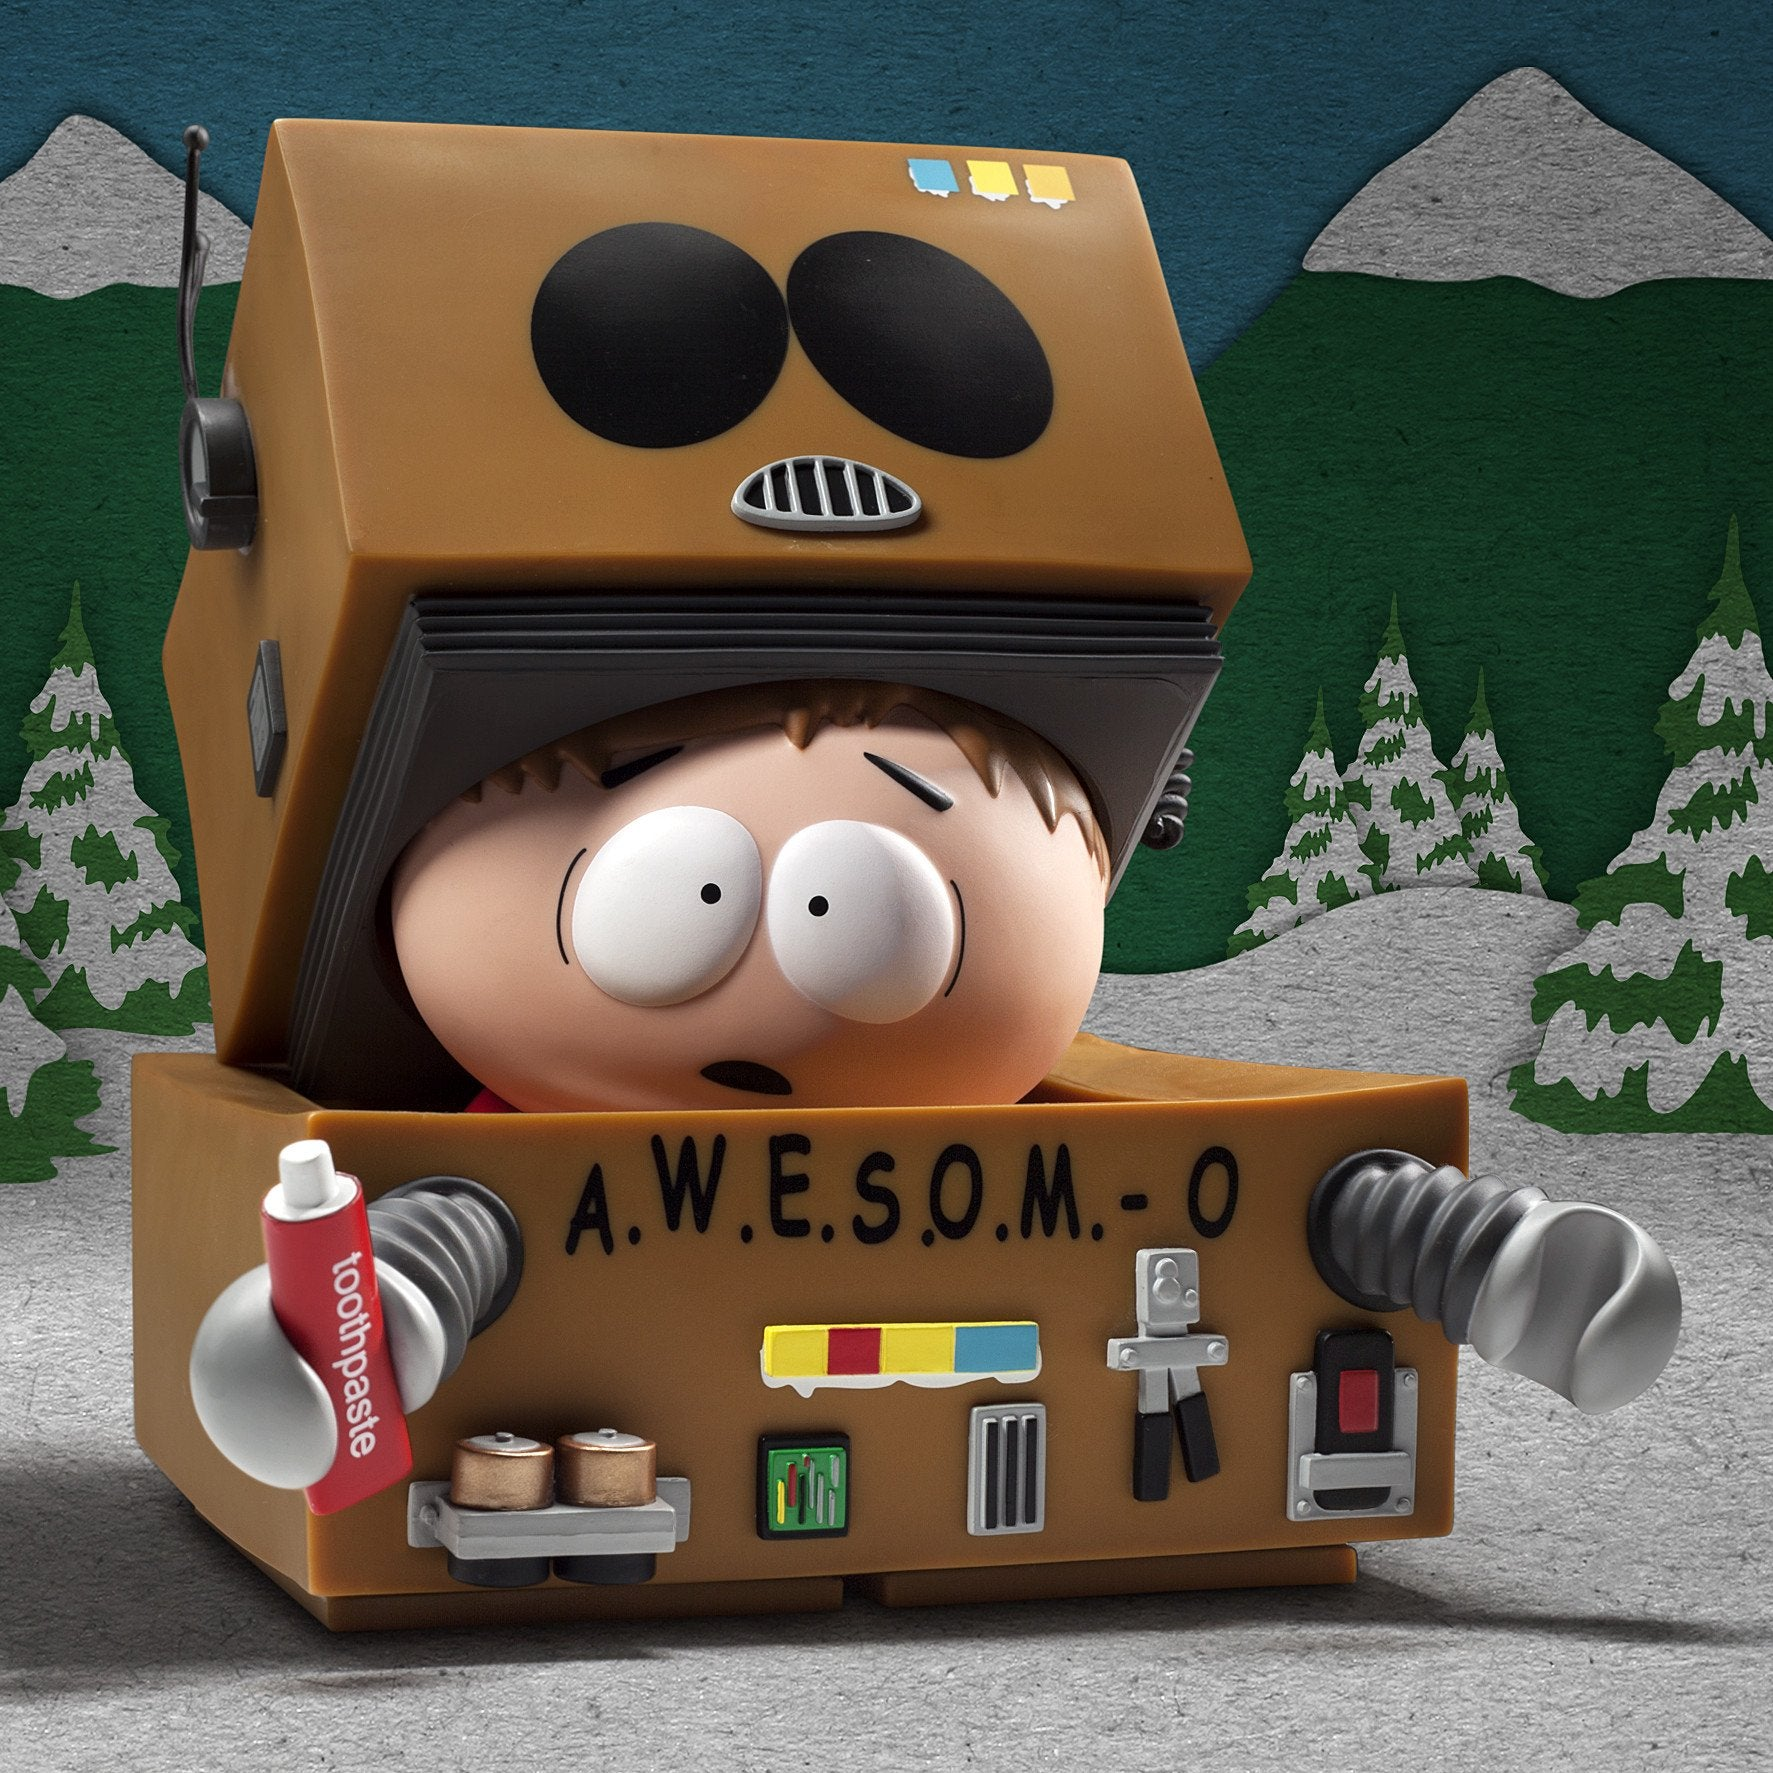 South Park AWESOMO Cartman Designer Toy Figure by Kidrobot - Kidrobot - Designer Art Toys